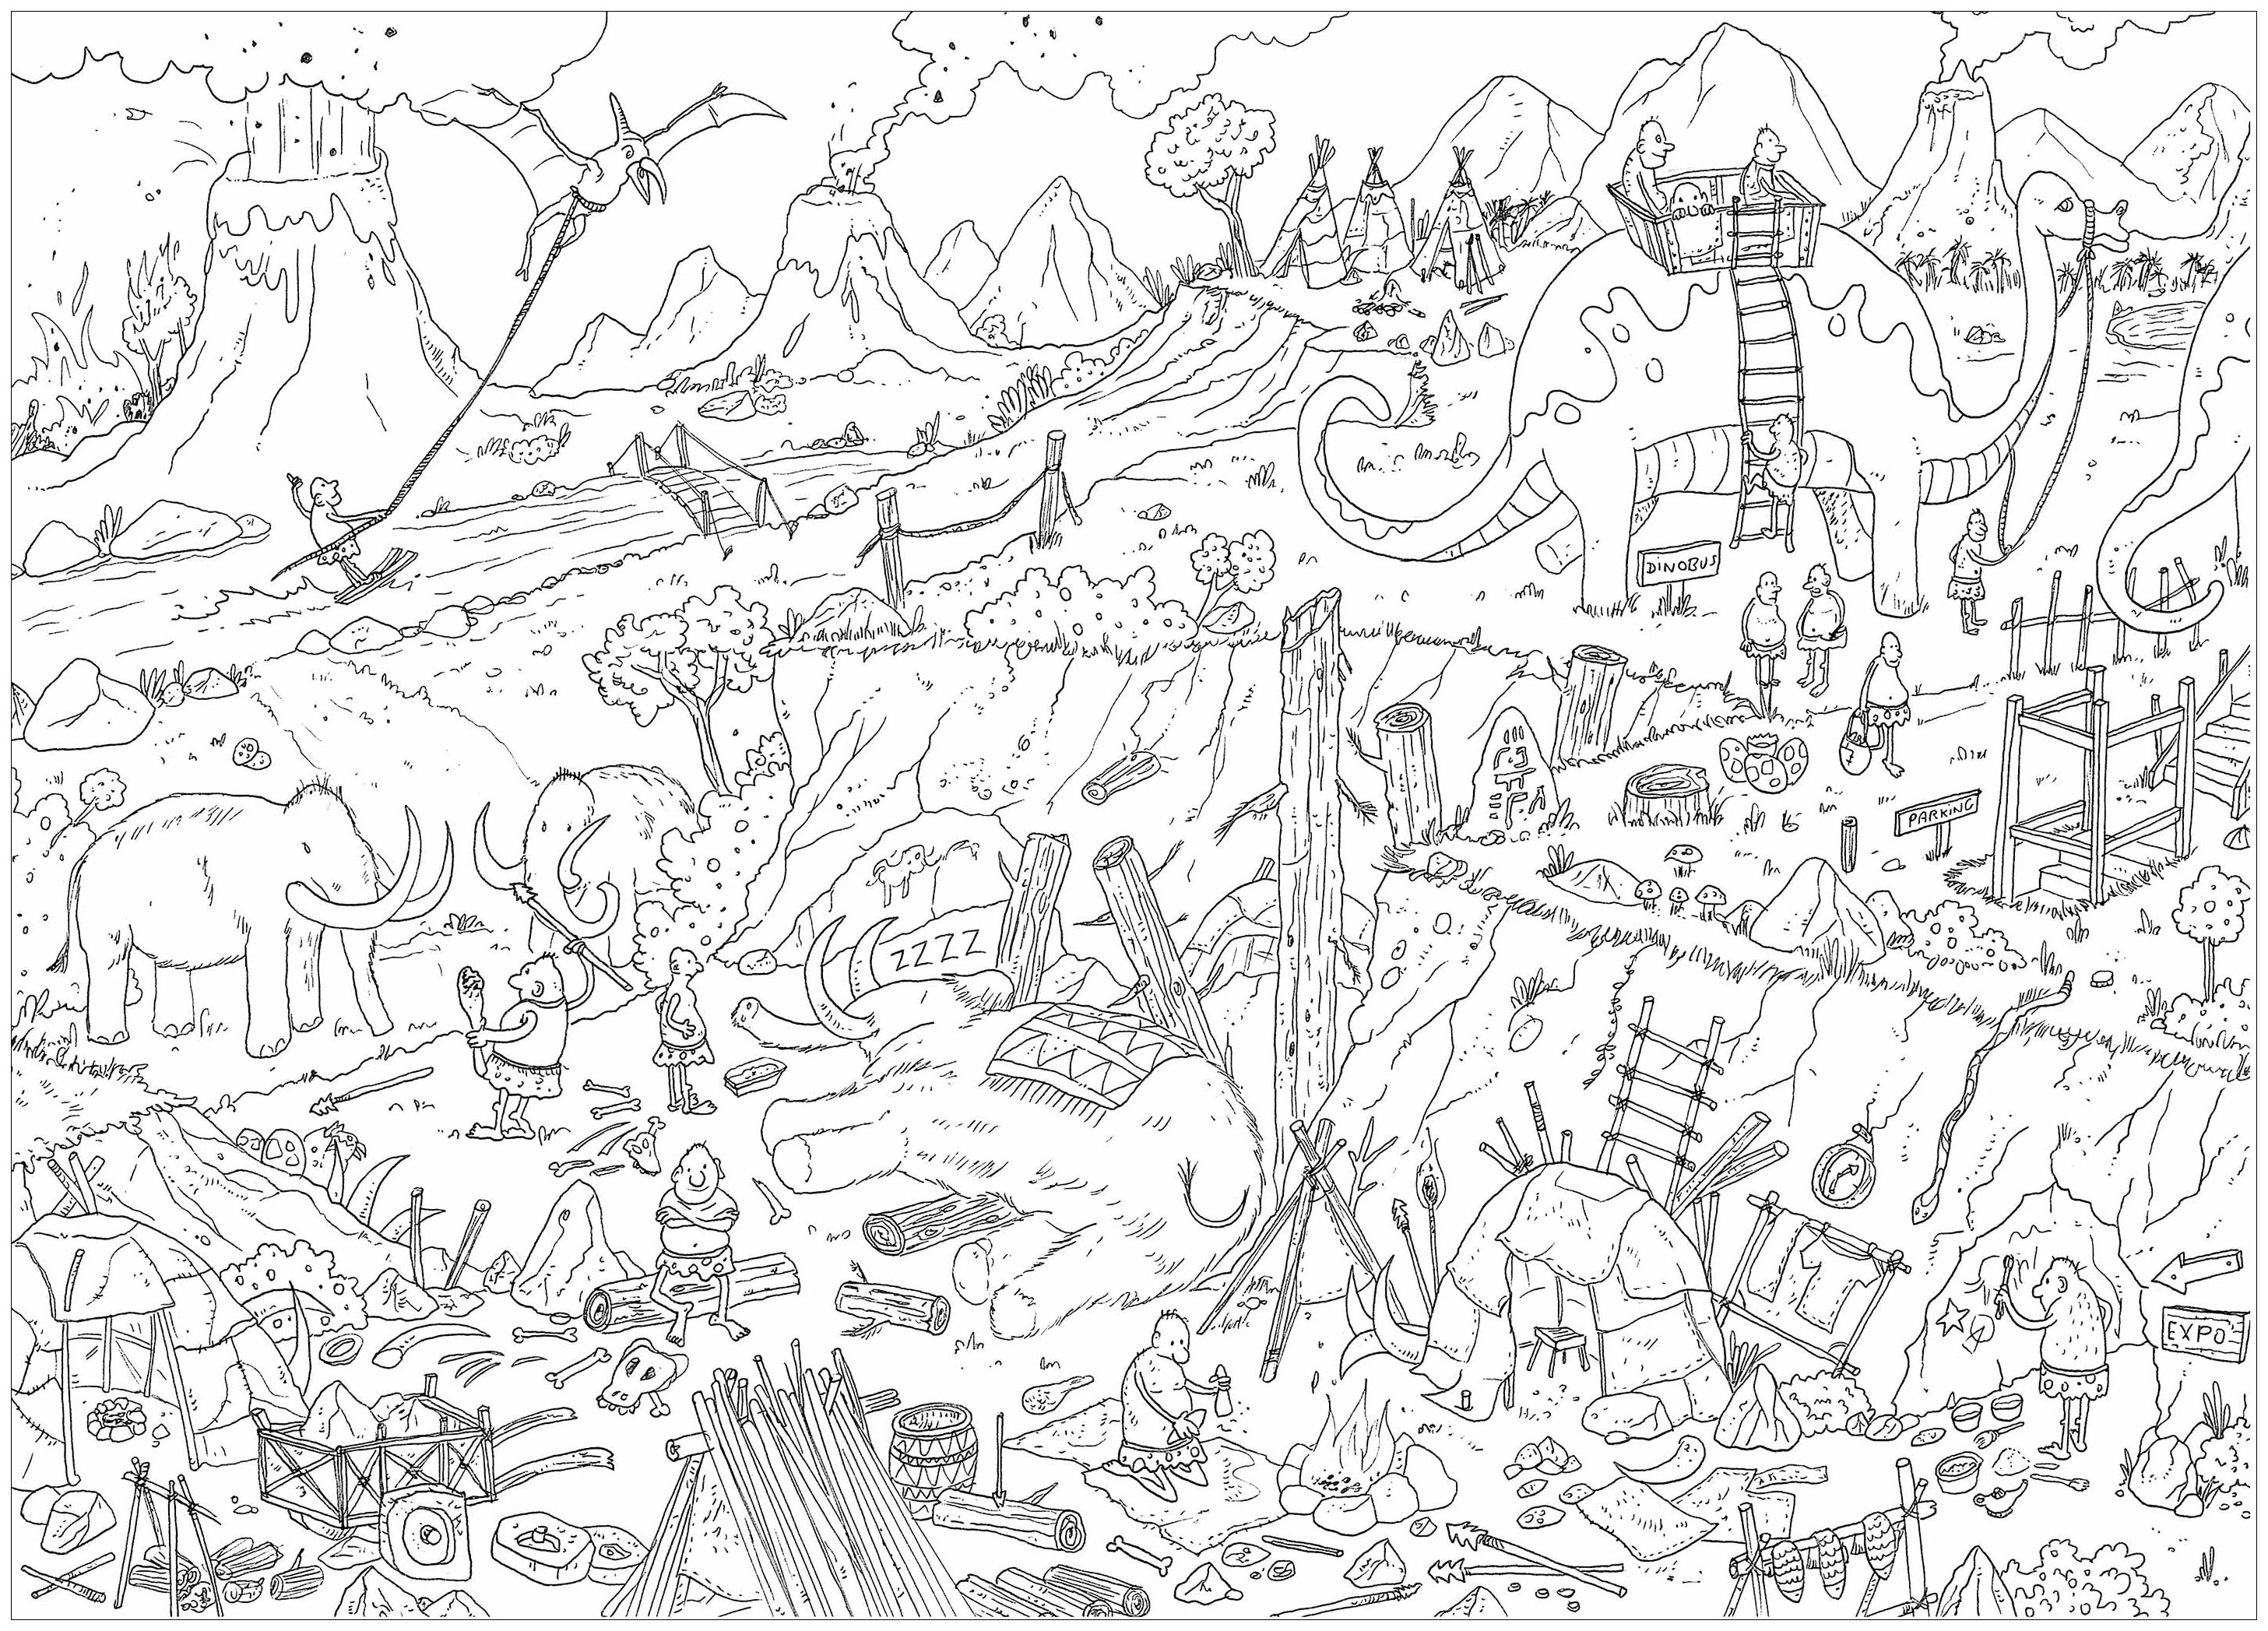 'Prehistory', a complex coloring page, 'Where is Waldo ?' style